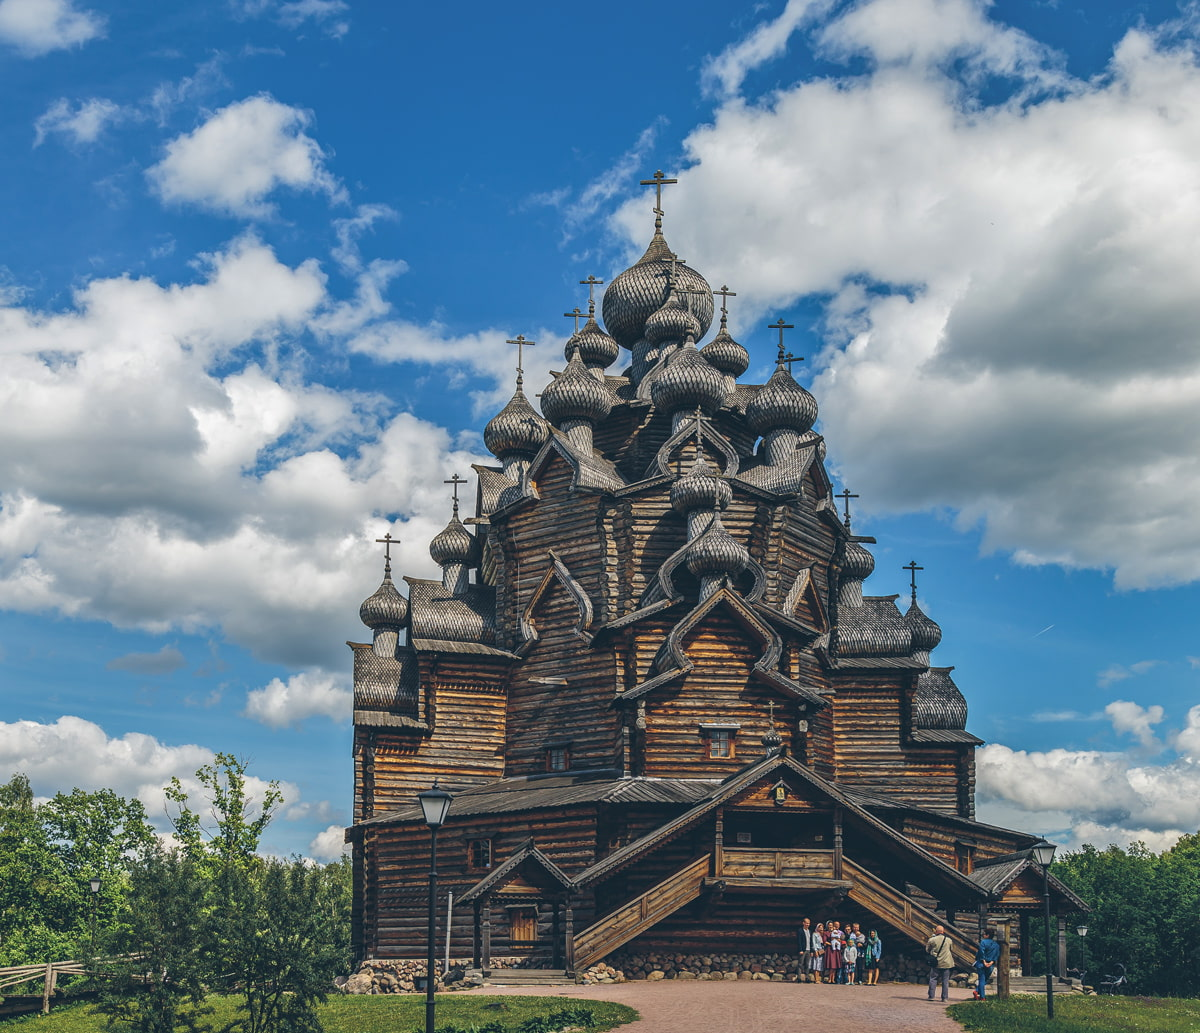 15 Churches in Europe with Stunning Architecture